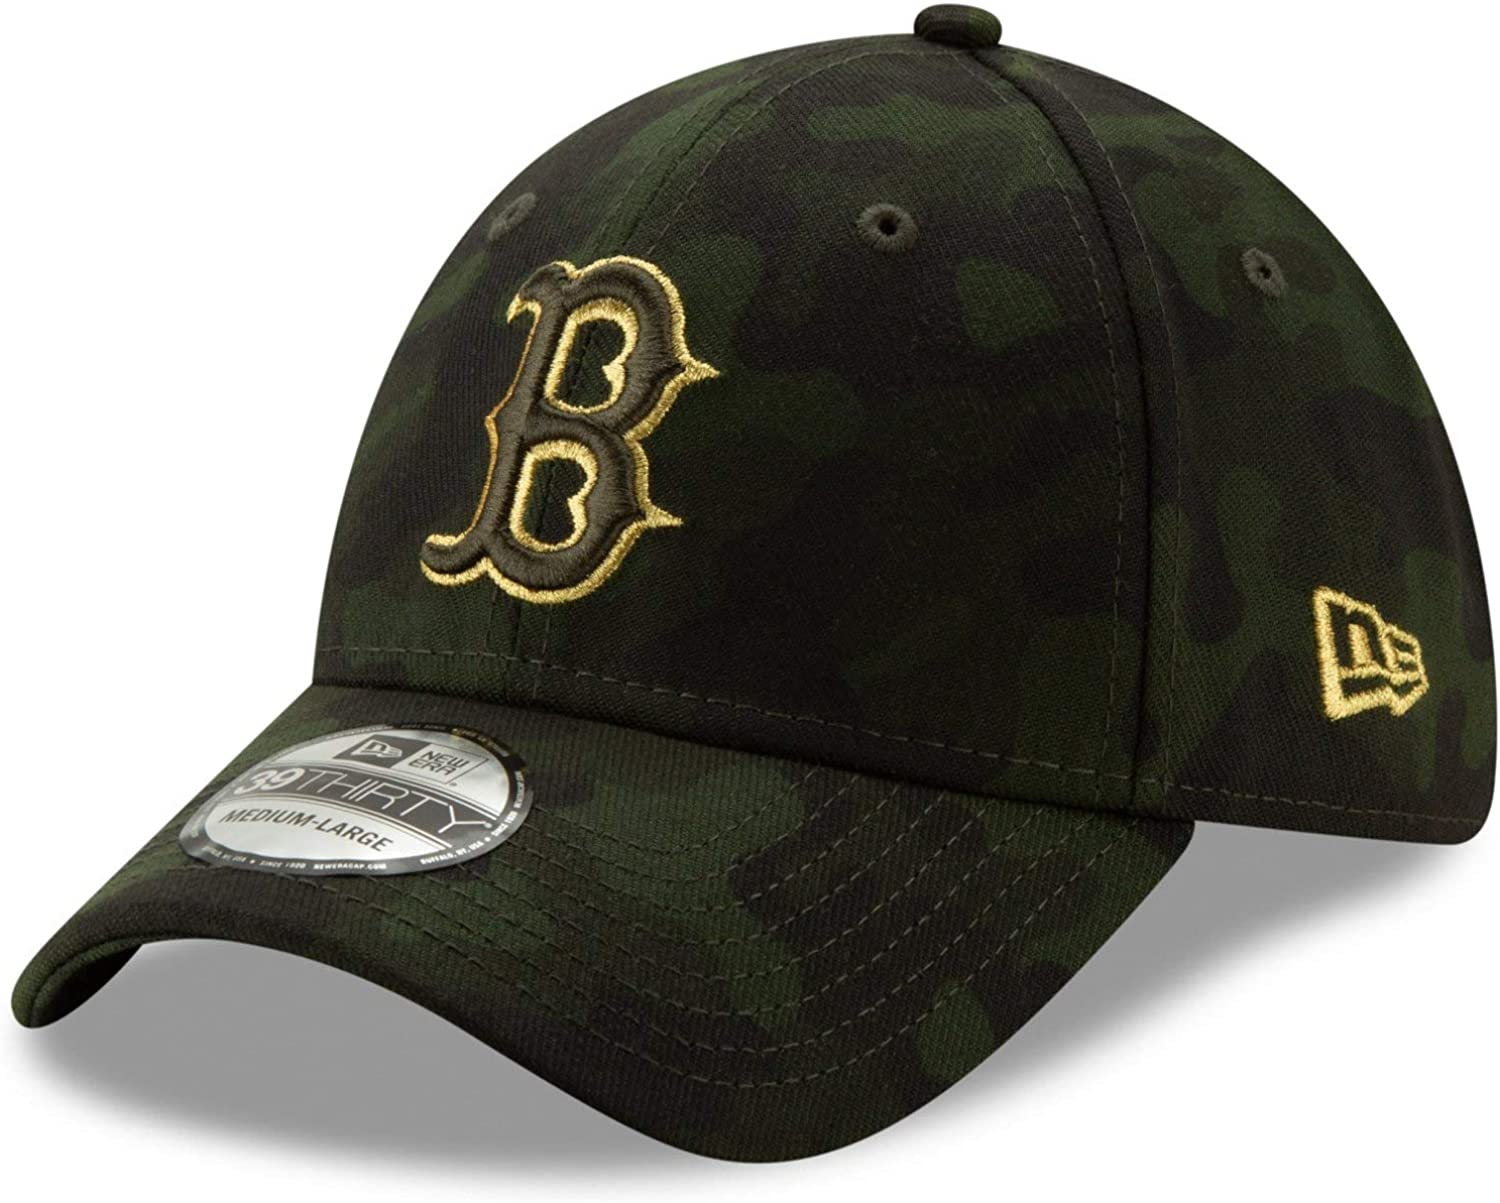 New Era 2019 MLB Boston Red Sox Hat Cap Armed Forces Day 39Thirty 3930